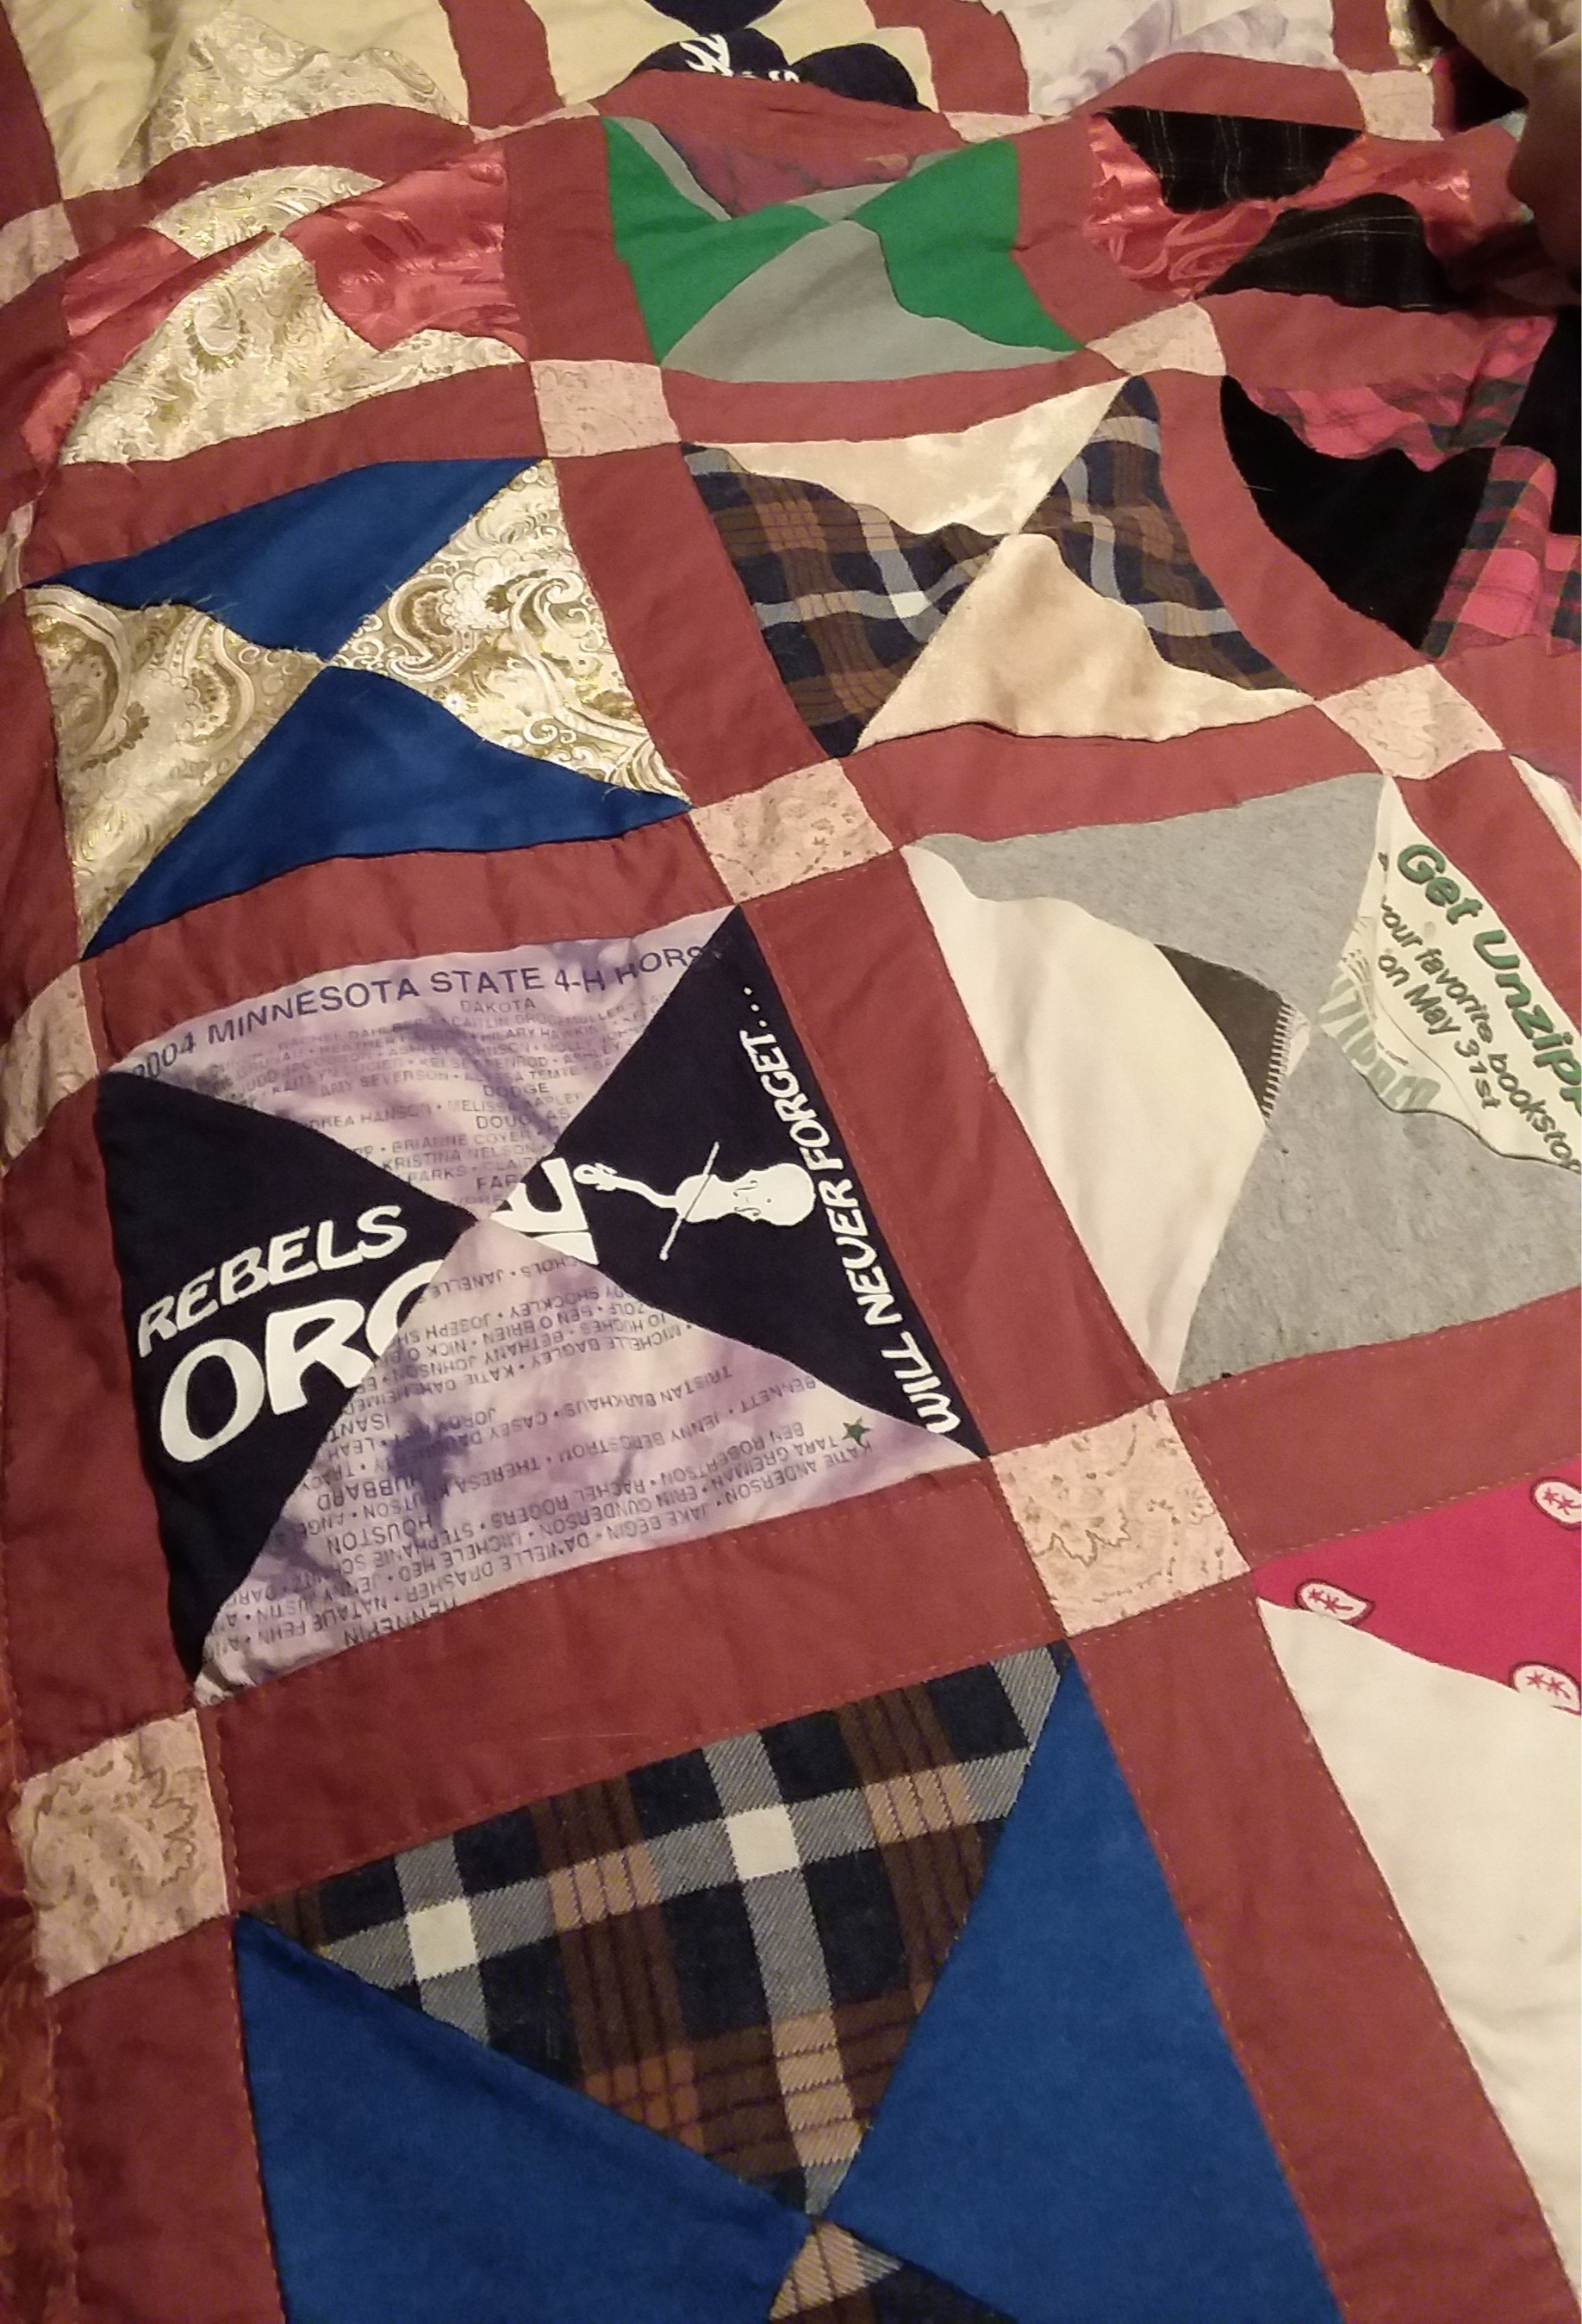 Here's the quilt that my mother took 12 years to make for me. It has scraps from my old clothes from 6 years old to high school graduation. It also has some of my dad's old shirts and fabric from my first sewing projects.